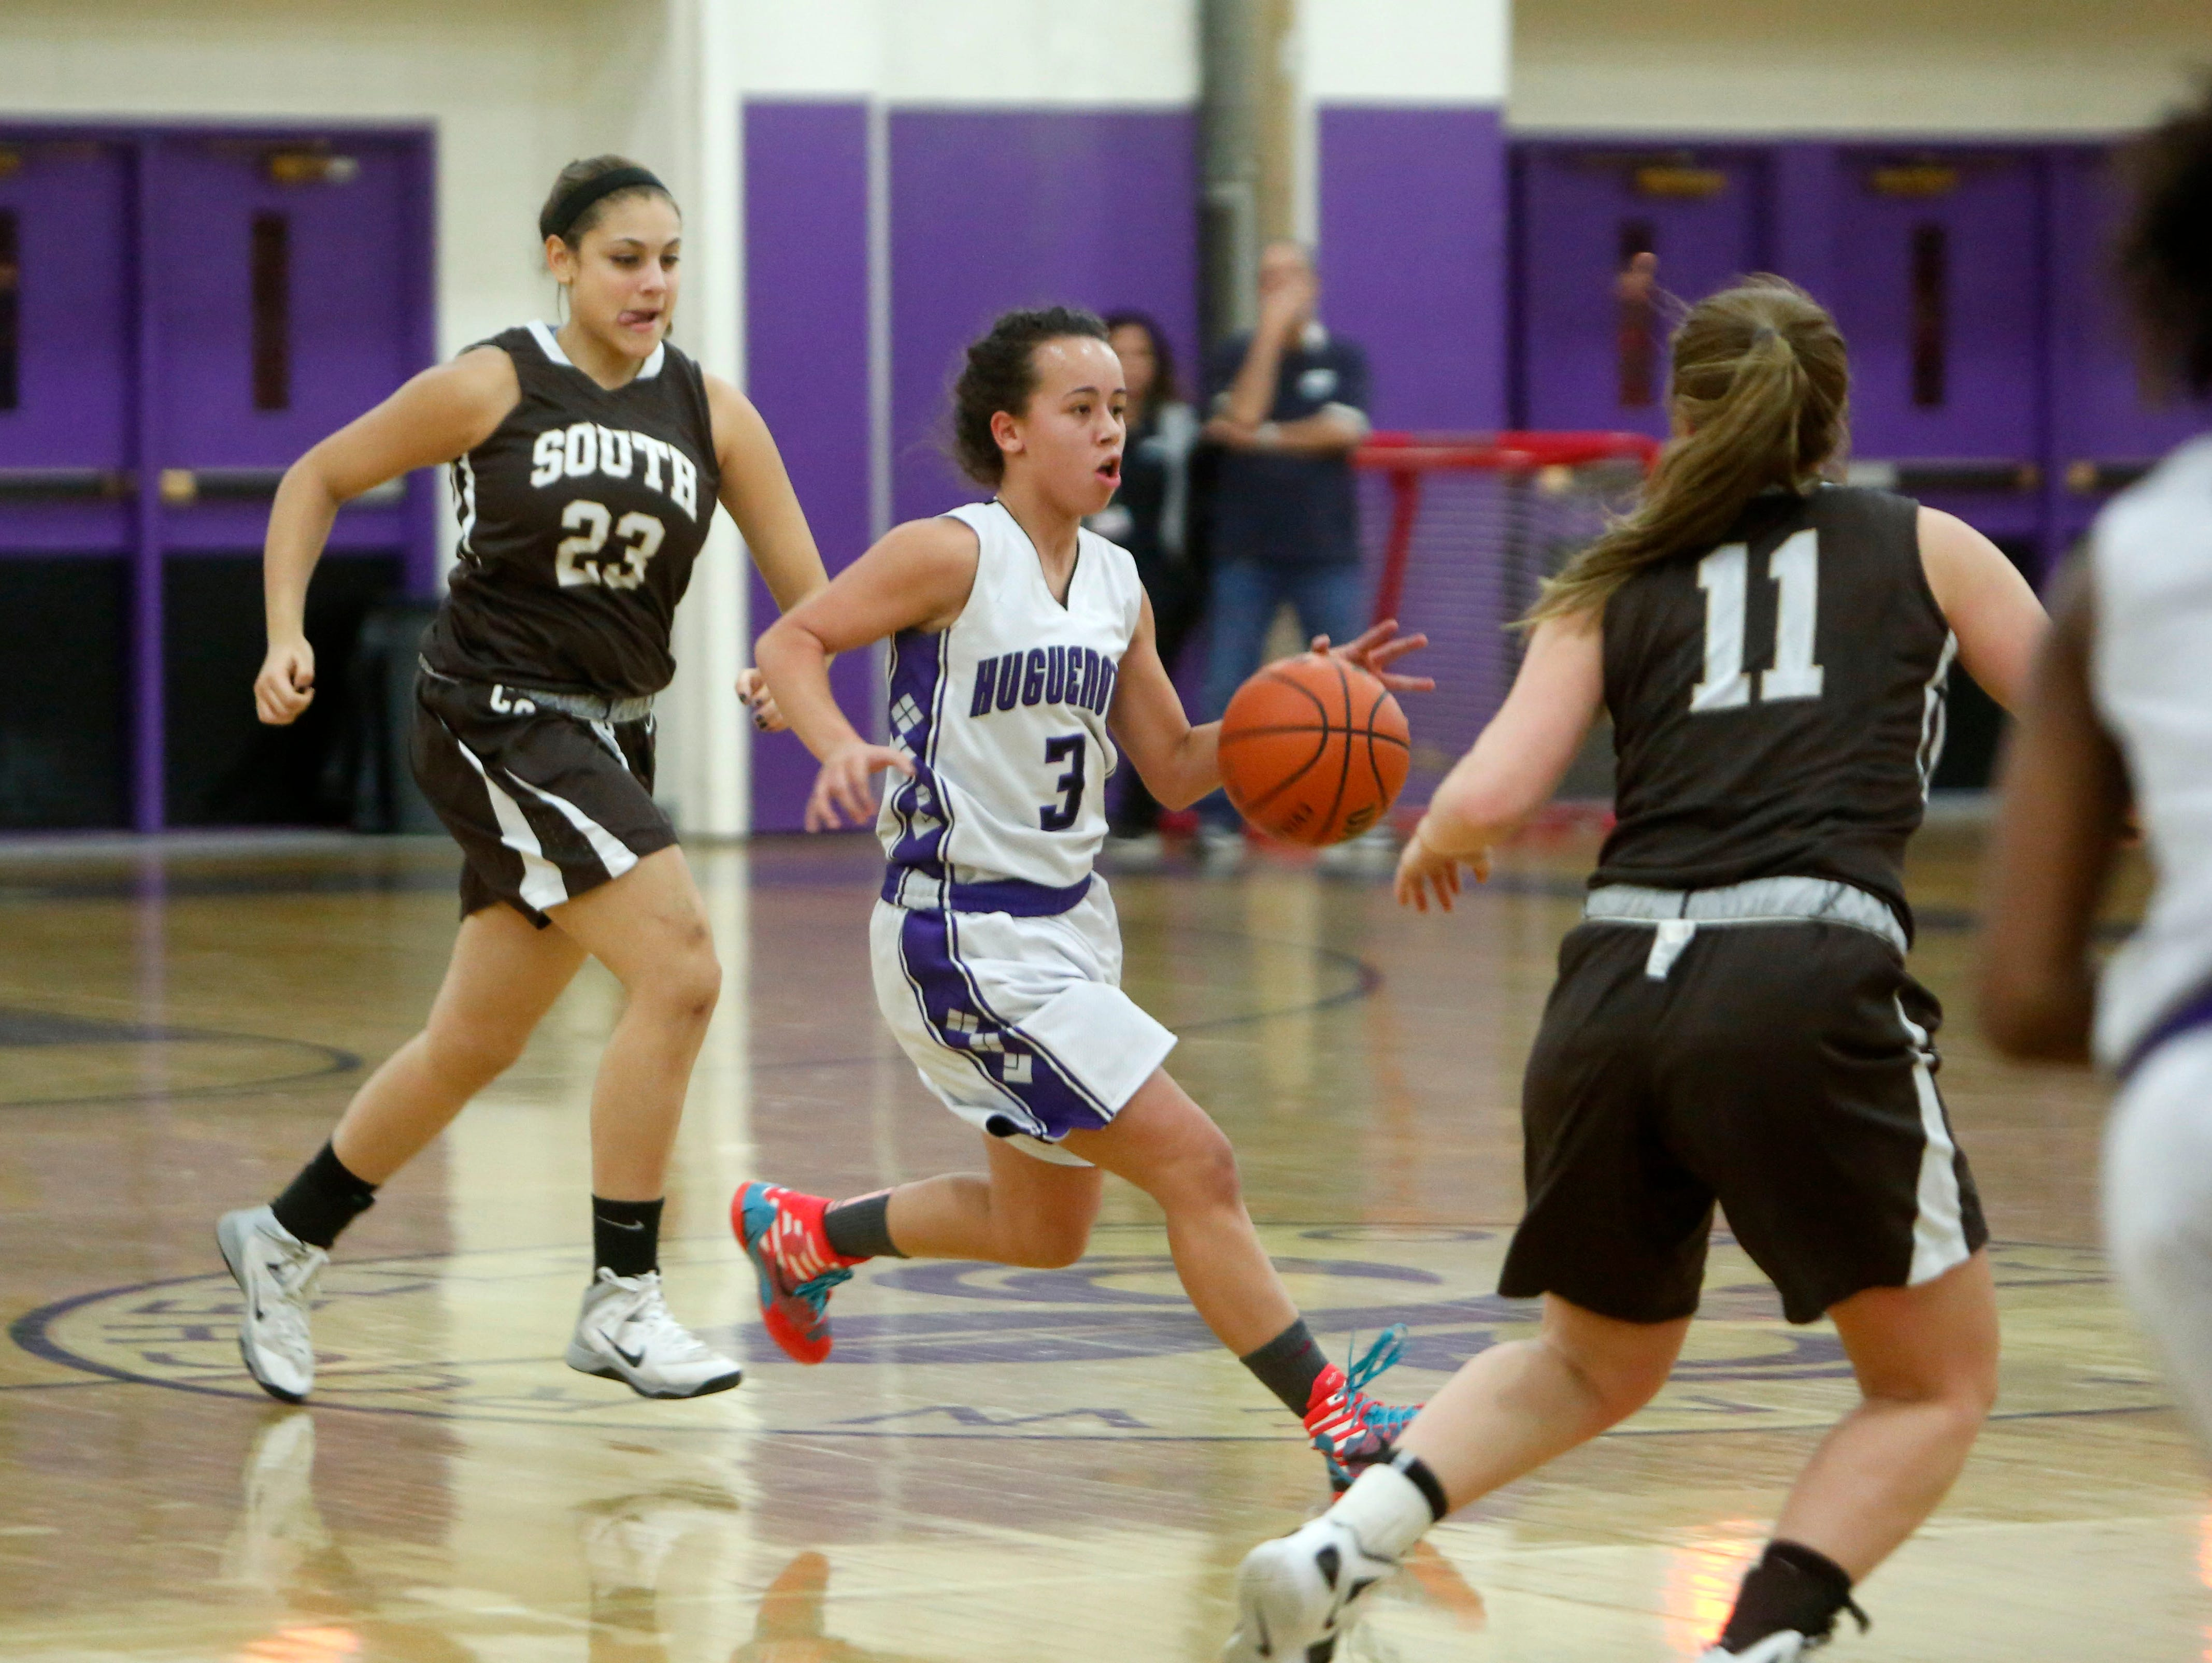 New Rochelle's Kayla Correa in action against Clarkstown South's Britney Gallagher, left, and Kayla Tucek during a girls basketball game, Dec. 10, 2014 in New Rochelle. New Rochelle won, 63-60.